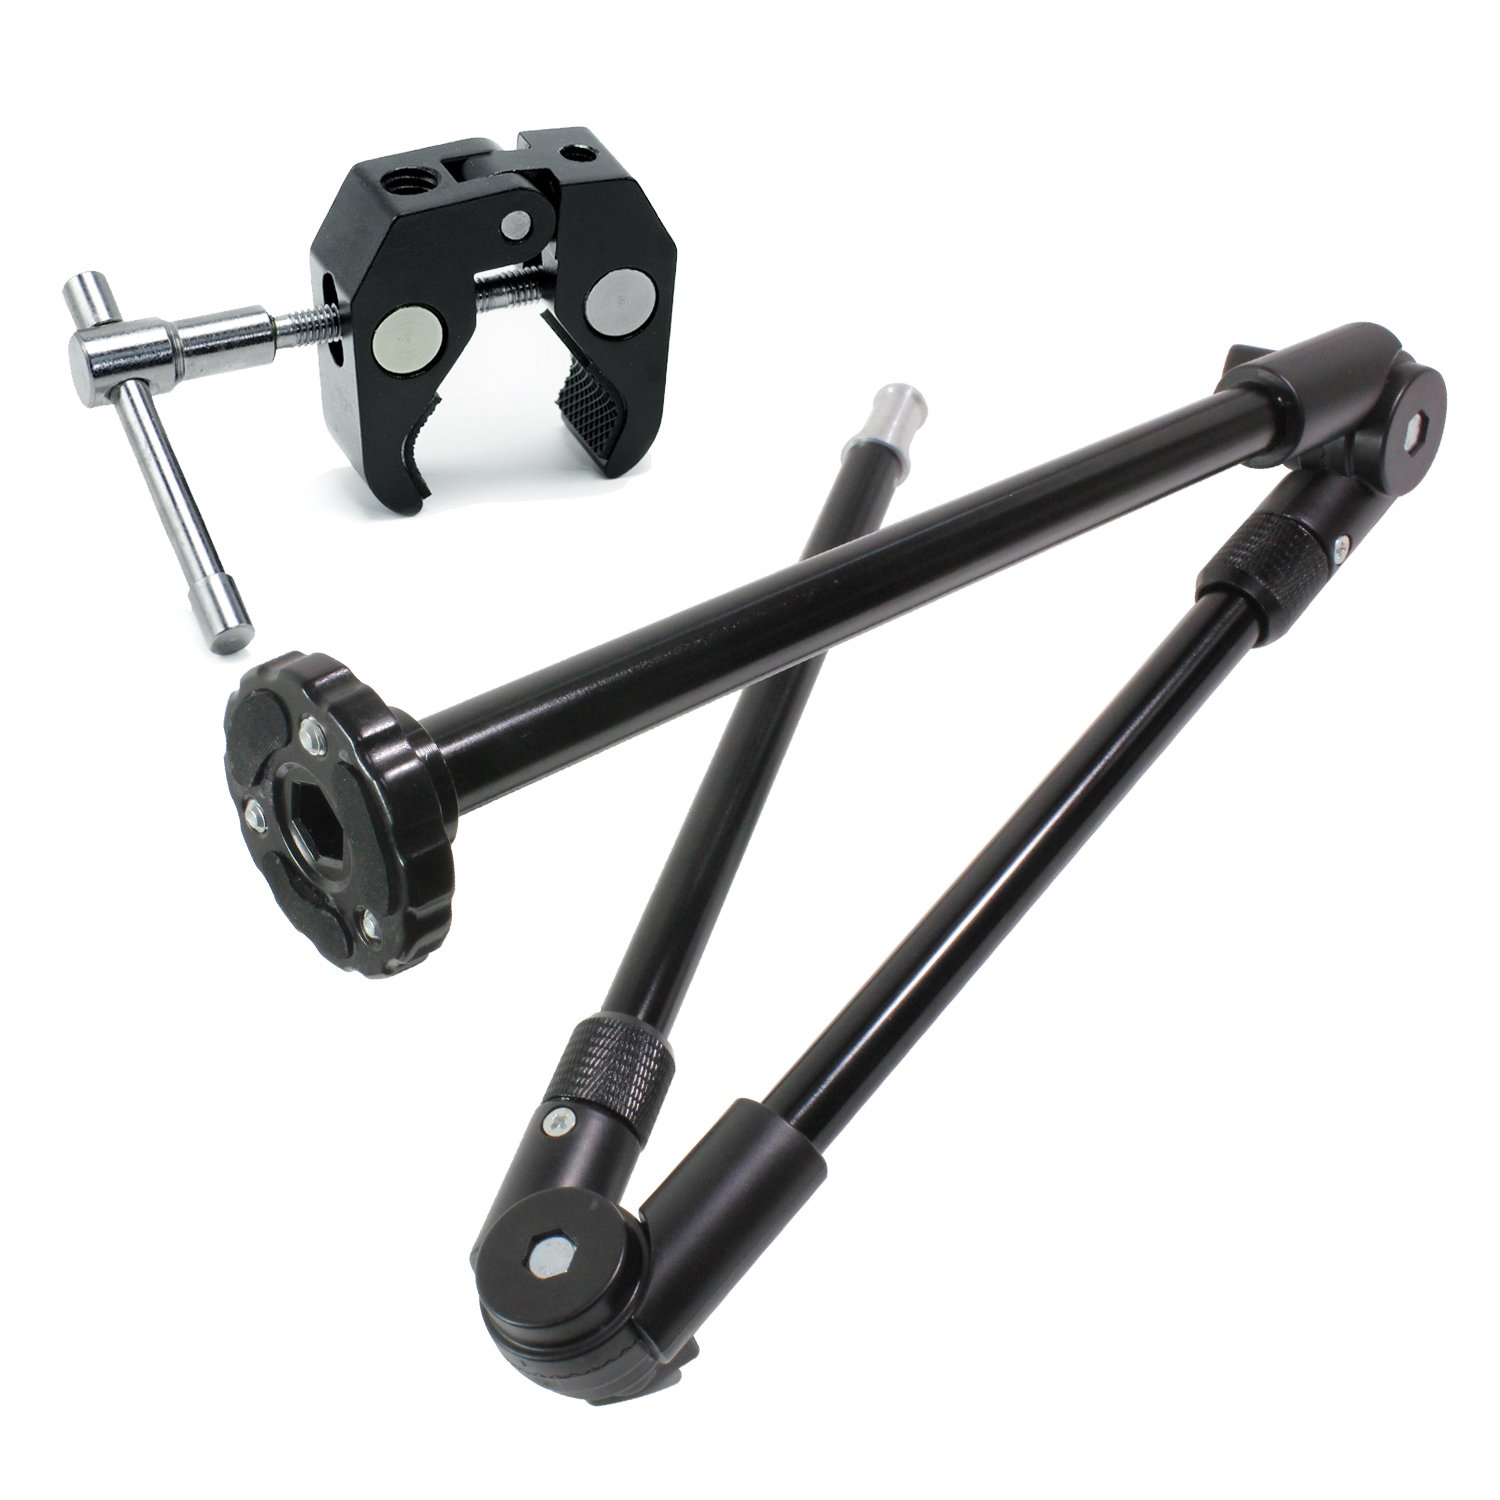 LS Photography 3 Section Single Articulated Arm Camera Mount Bracket with 5/8'' & 1/4'' Stud and Super Clamp with 1/4'' & 3/8'' Threads, Photo Video Light Stand Support, LGG707